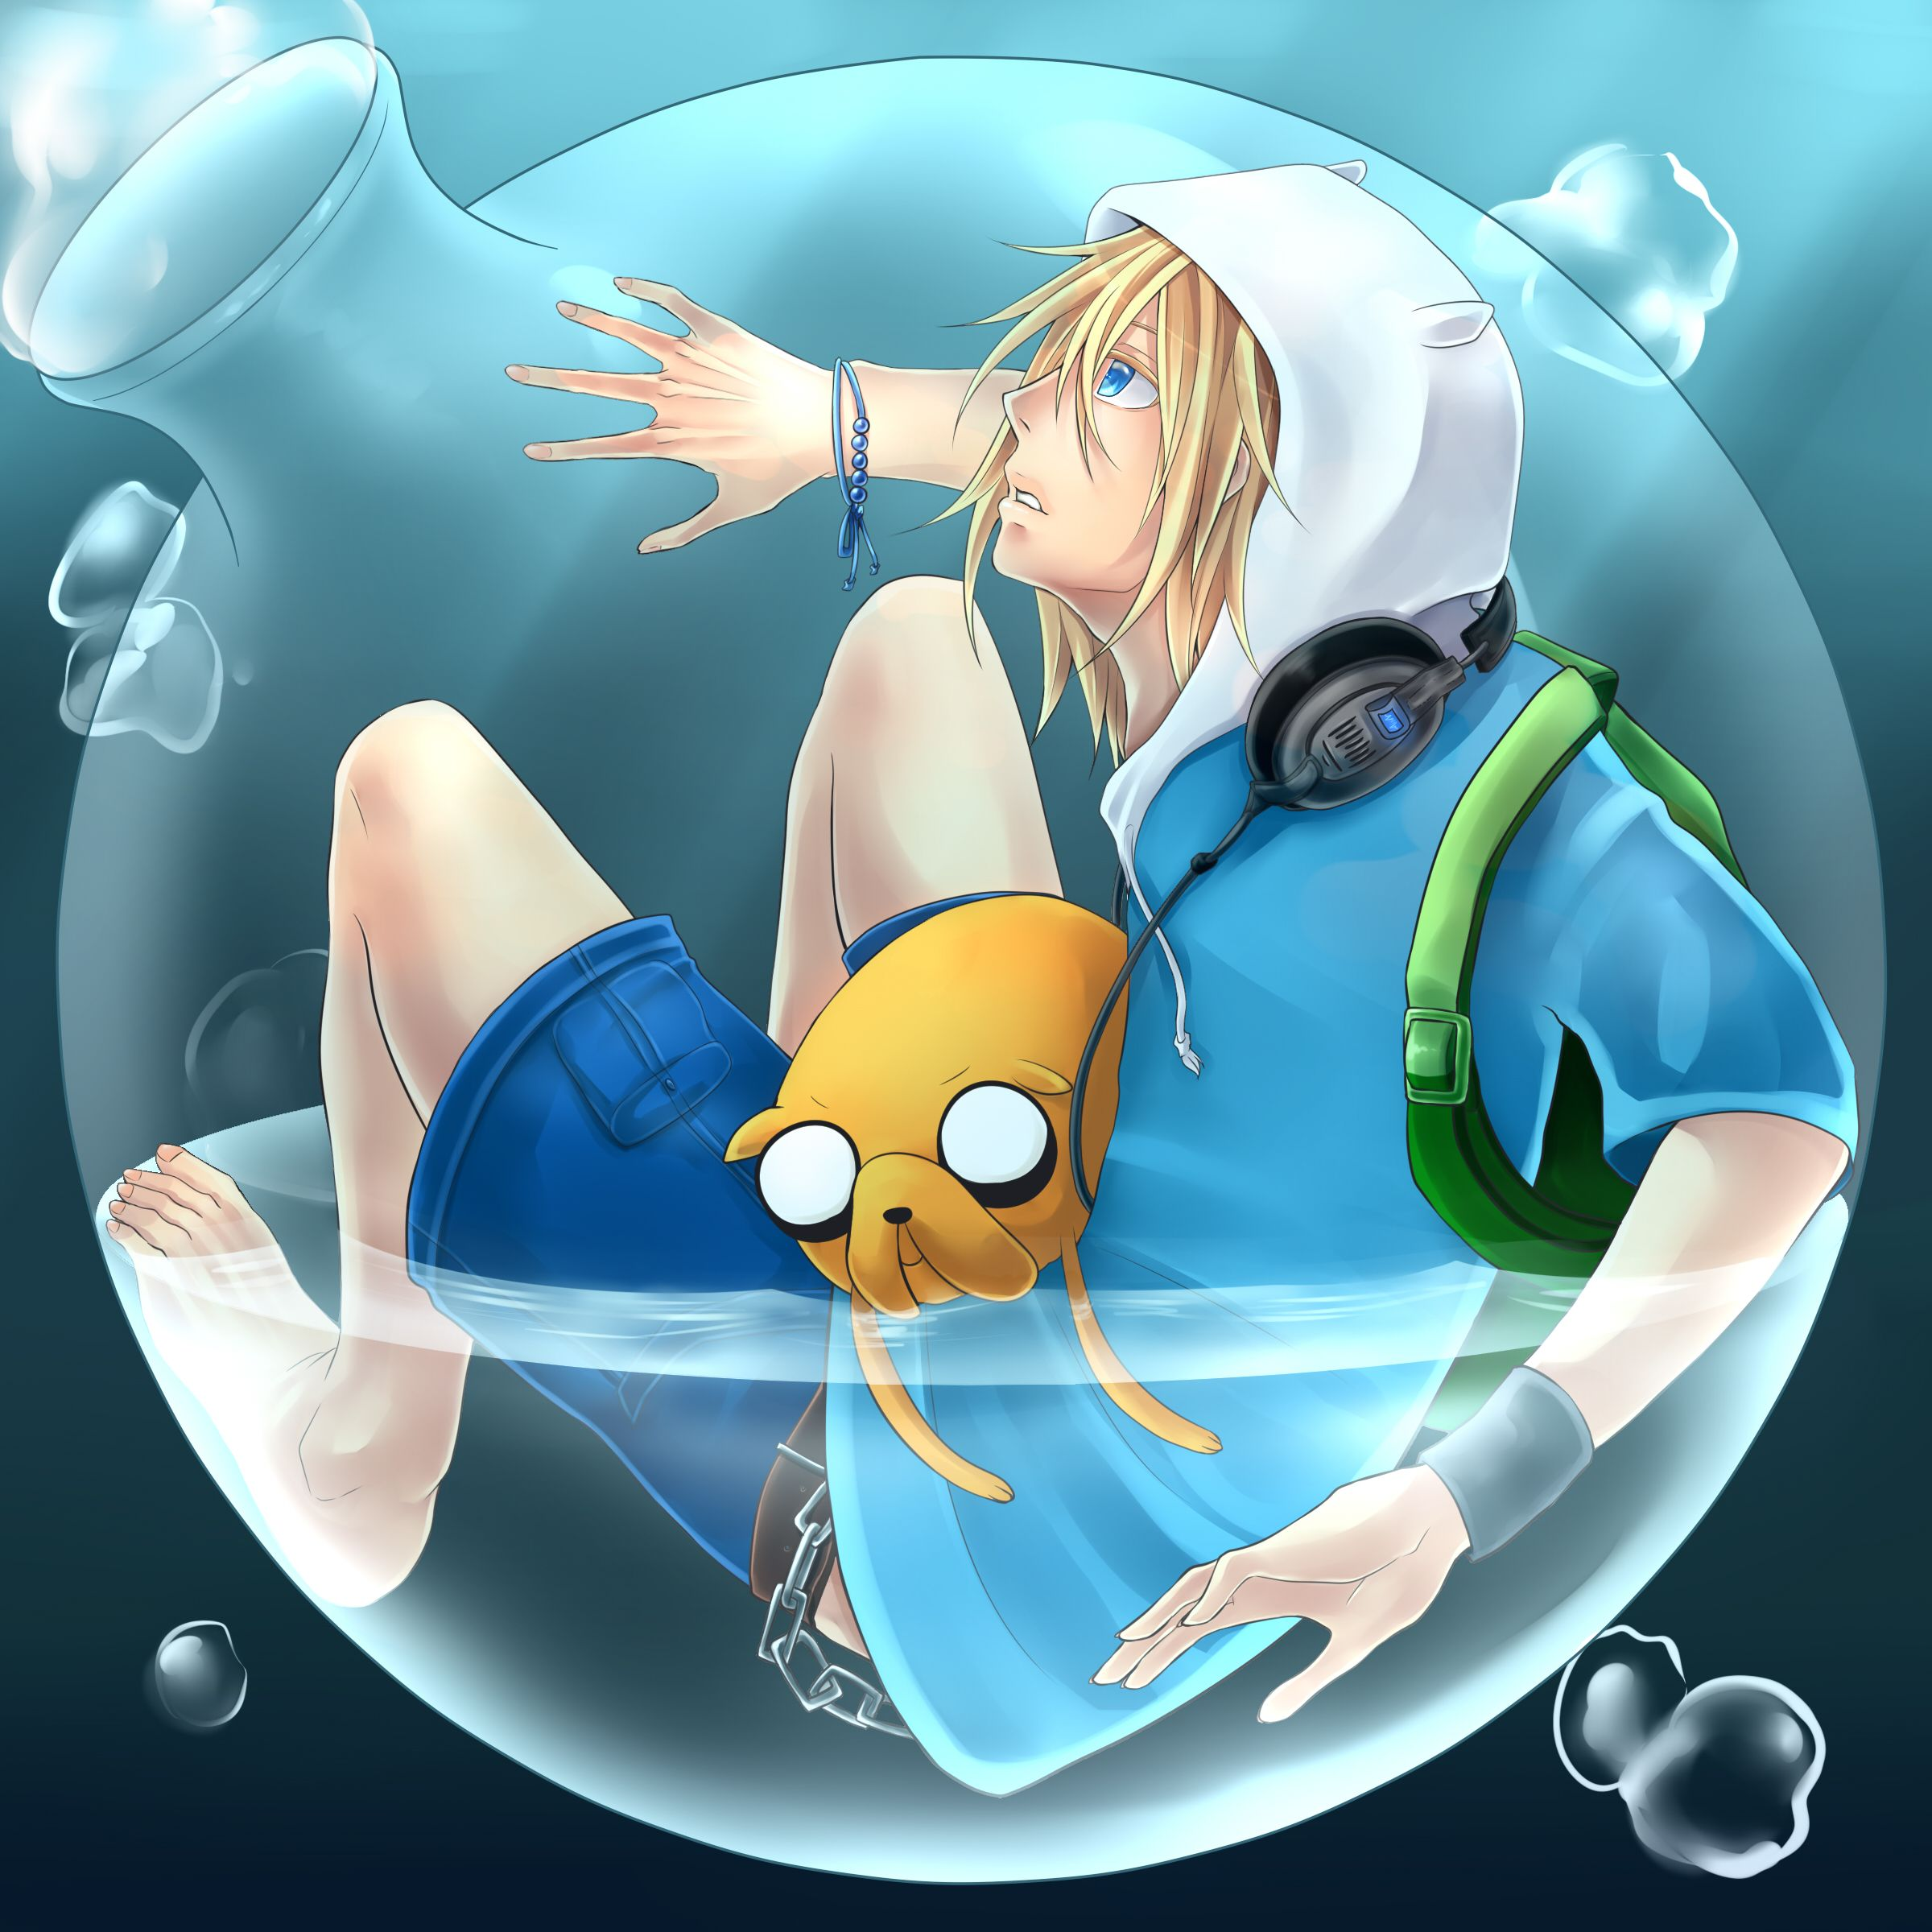 anime finn the human wallpaper wwwpixsharkcom images